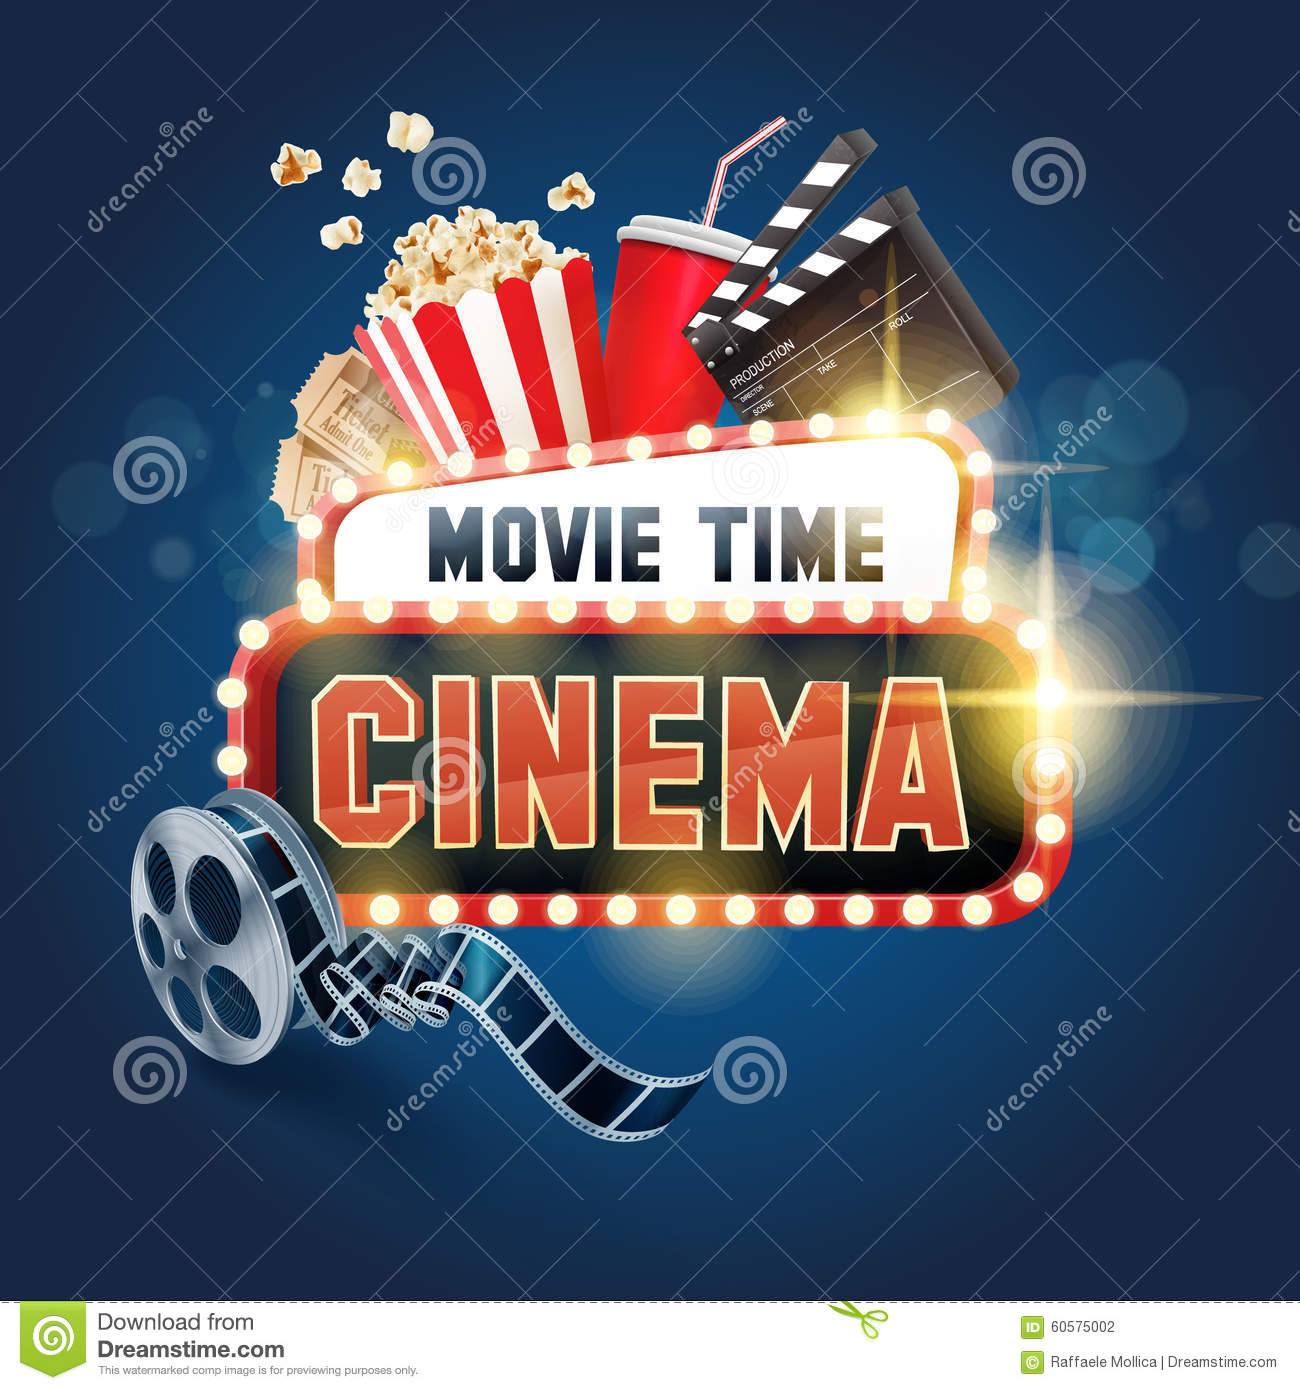 cinema ensign movie time stock vector image 60575002